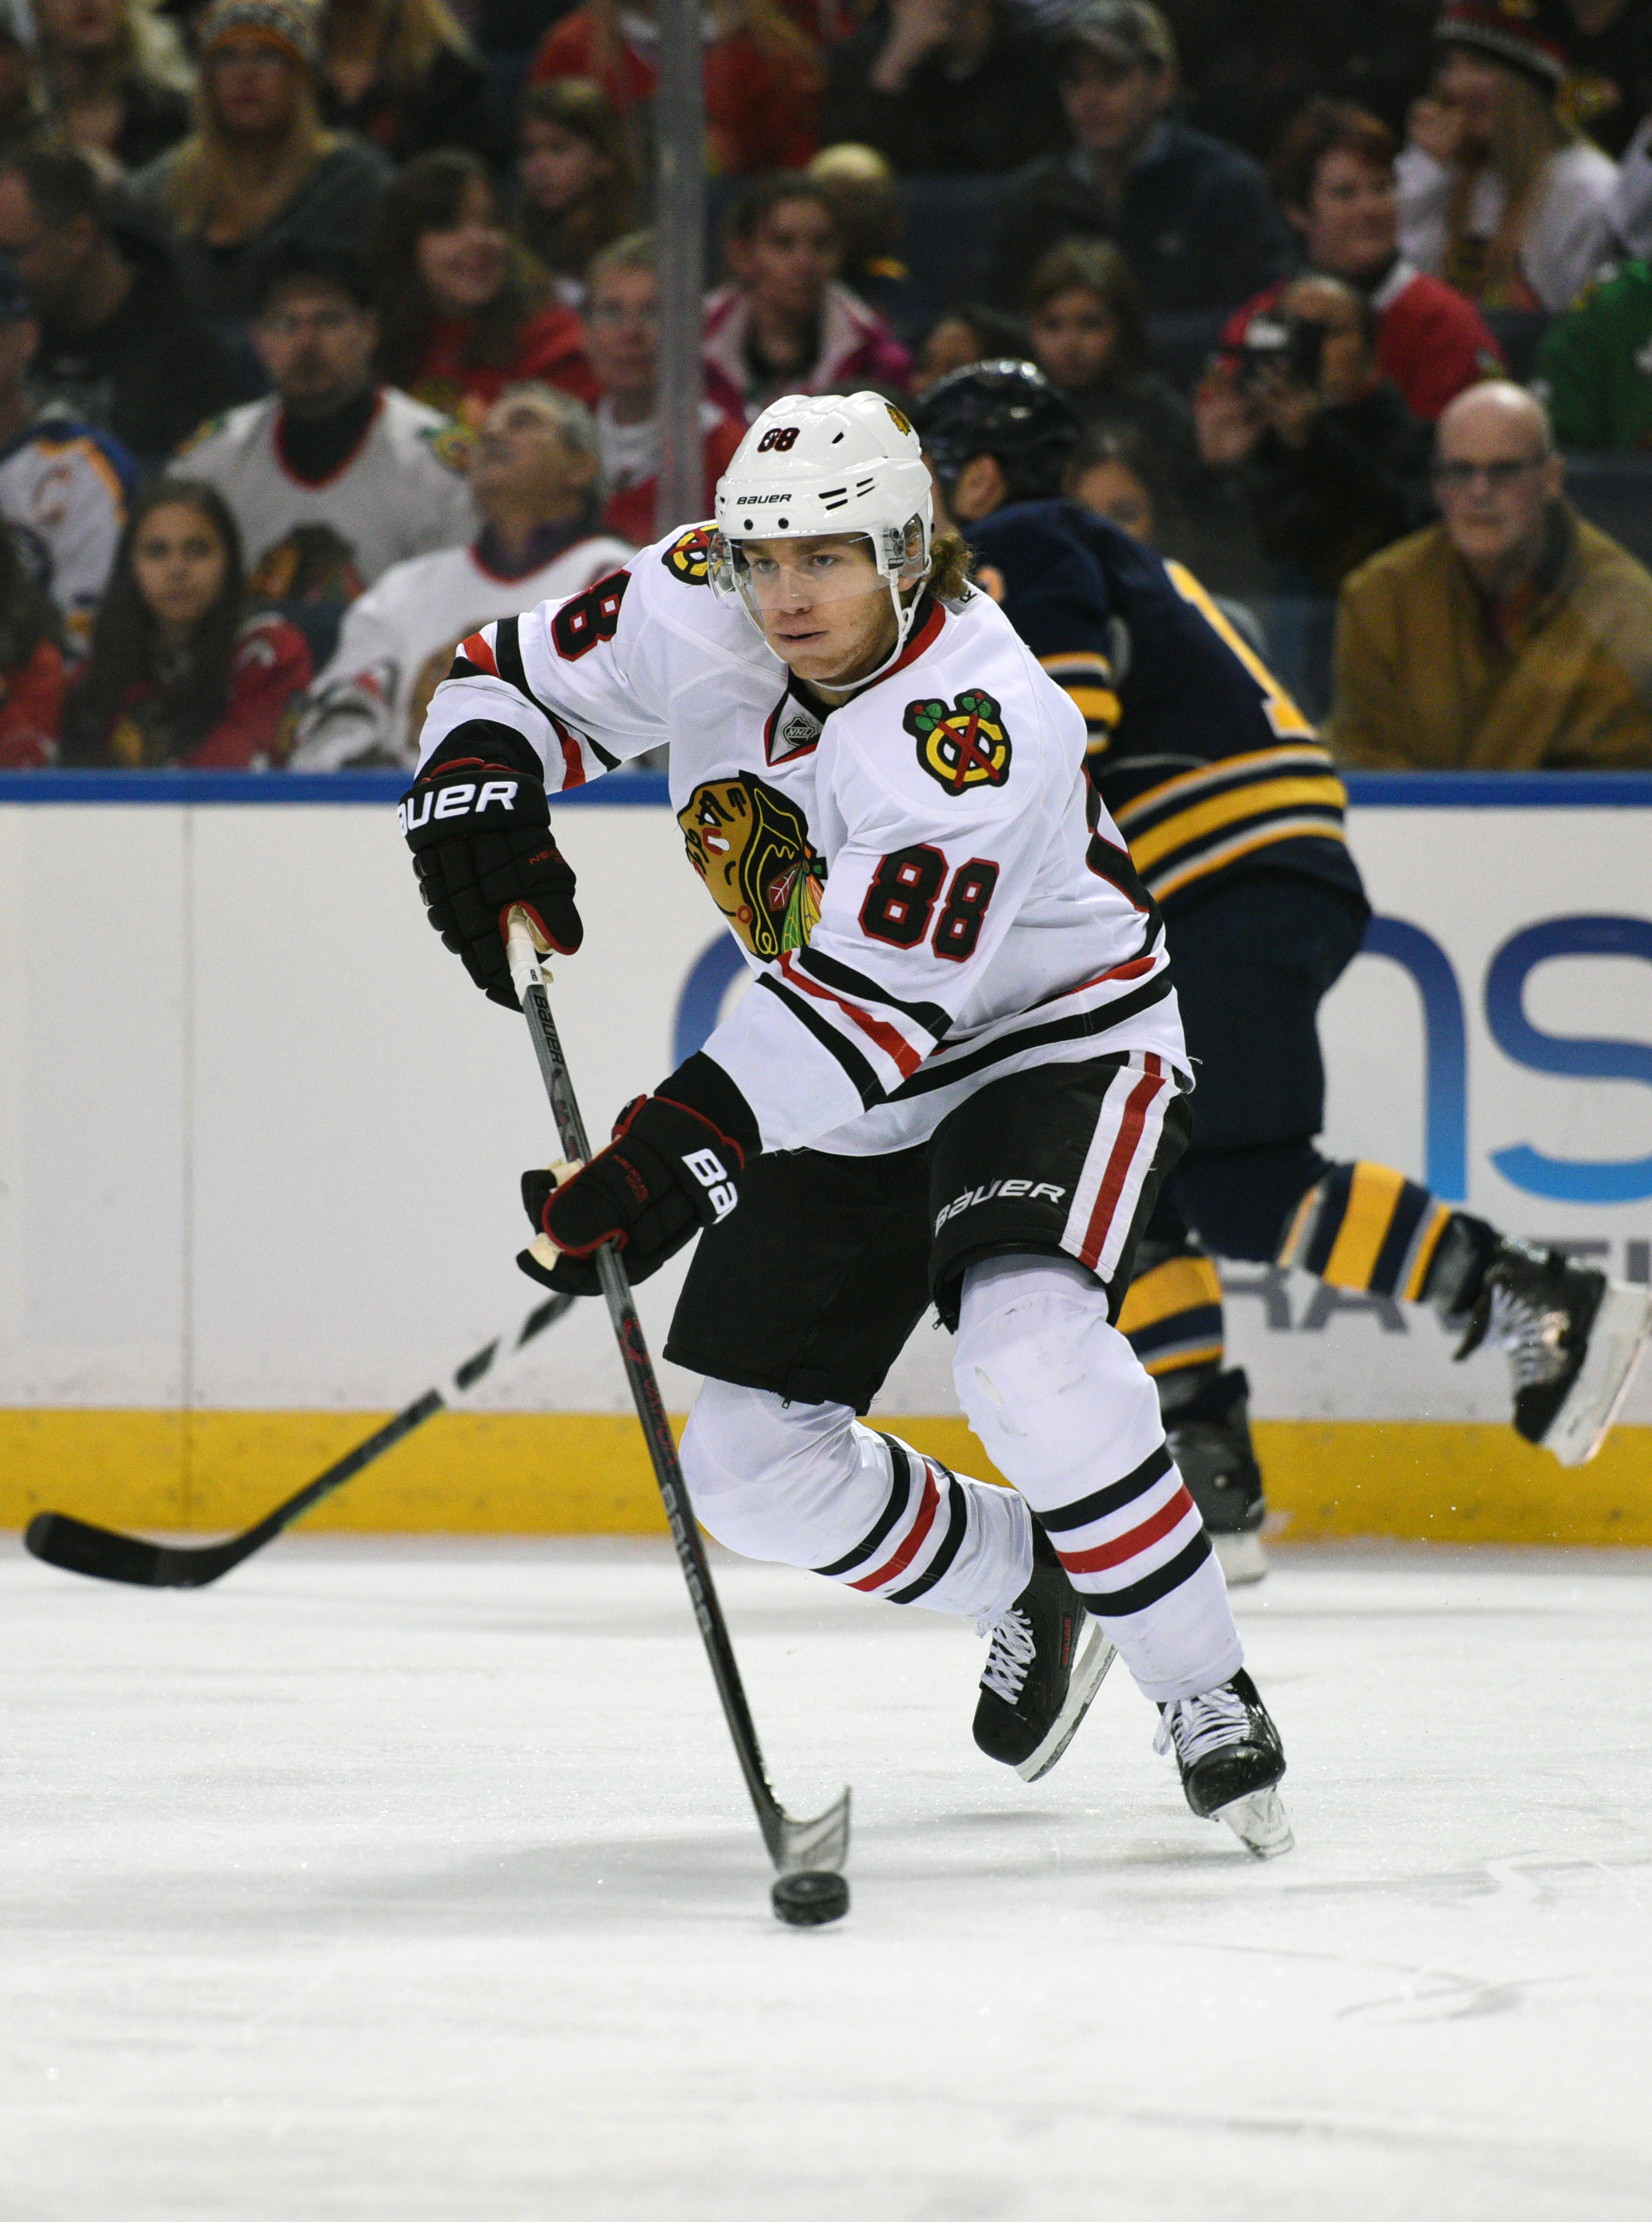 Chicago Blackhawks right winger Patrick Kane (88) skates up ice during the first period of an NHL hockey game against the Buffalo Sabres, Saturday Dec. 19, 2015 in Buffalo, N.Y. (AP Photo/Gary Wiepert)